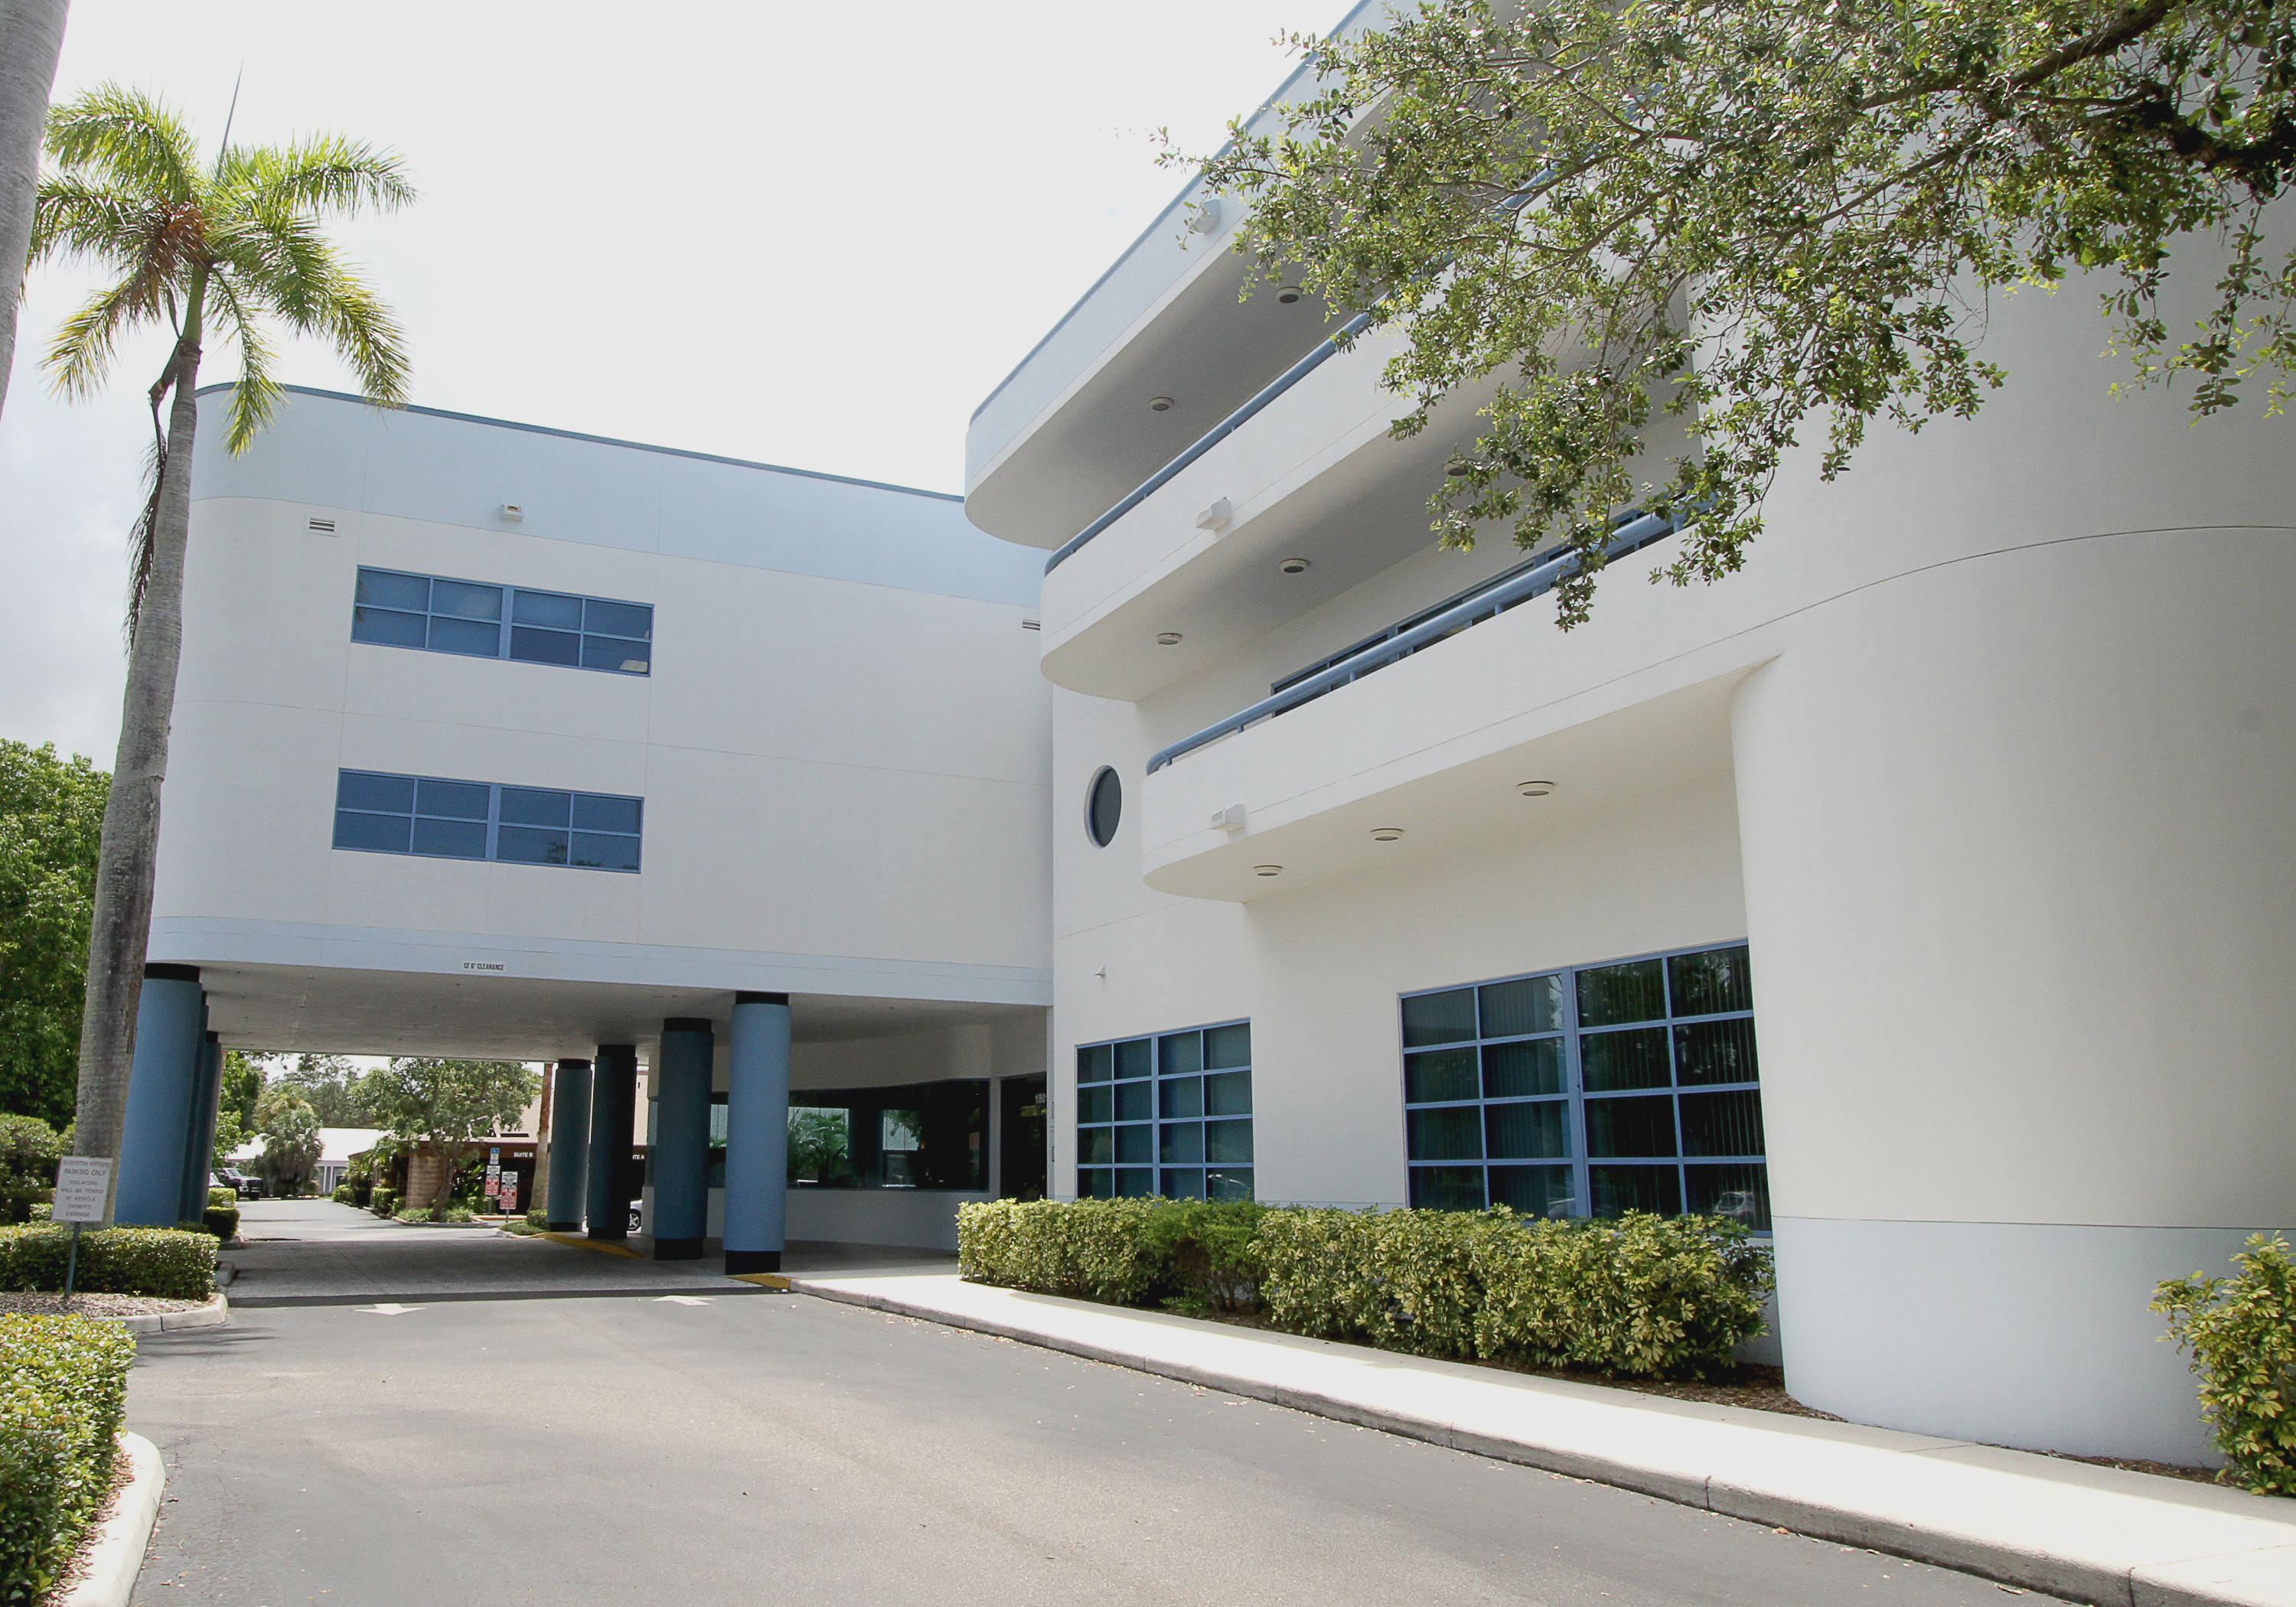 Wessel Construction: Silverstein Institute Healthcare Construction Project entry